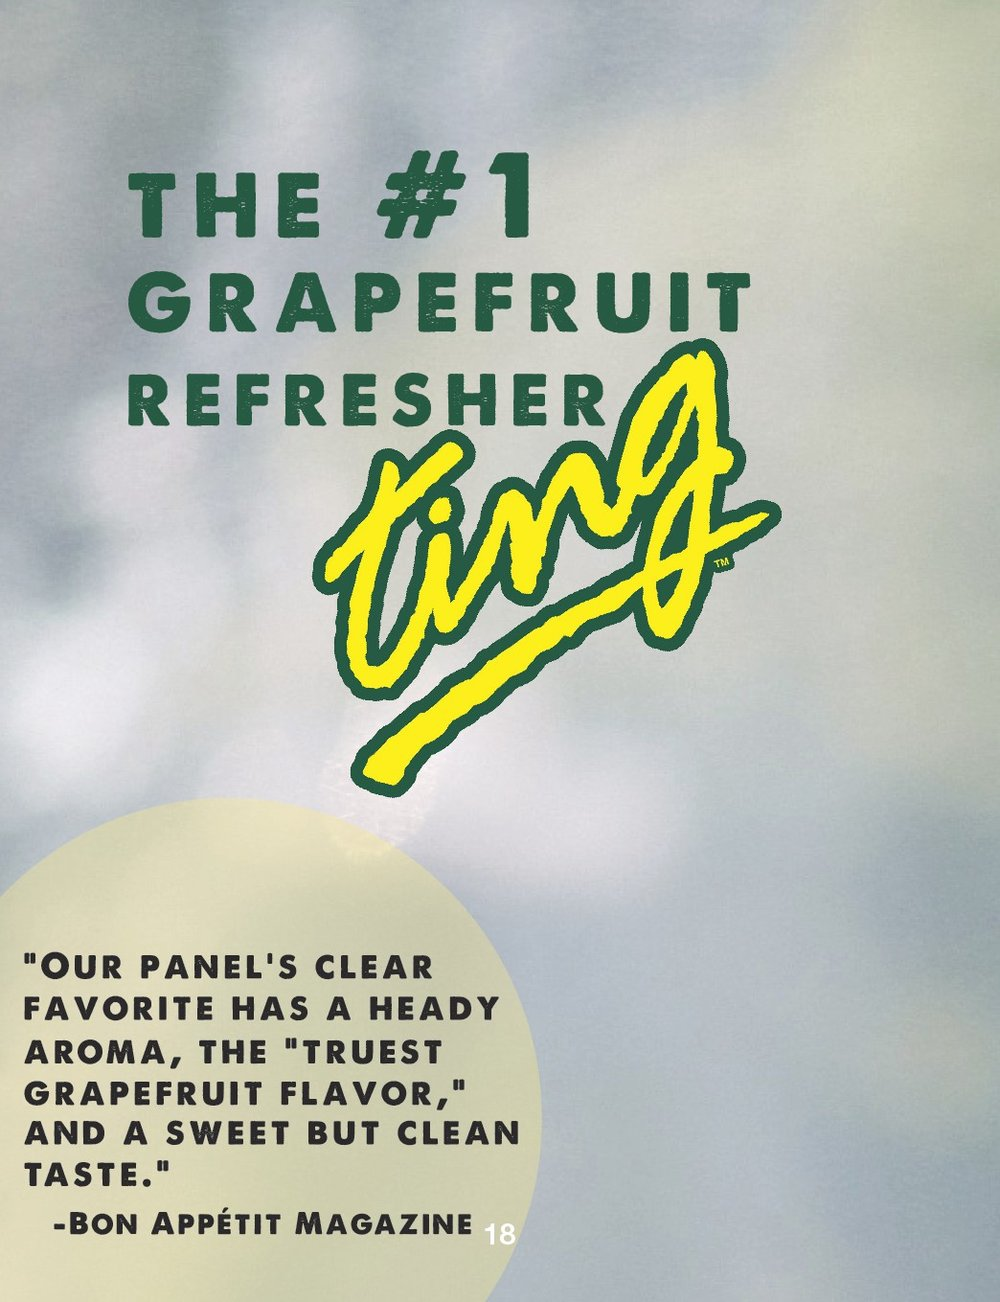 After a blind tasting, Ting was voted the #1 grapefruit mixer/refresher by Bon Appetite Magazine.